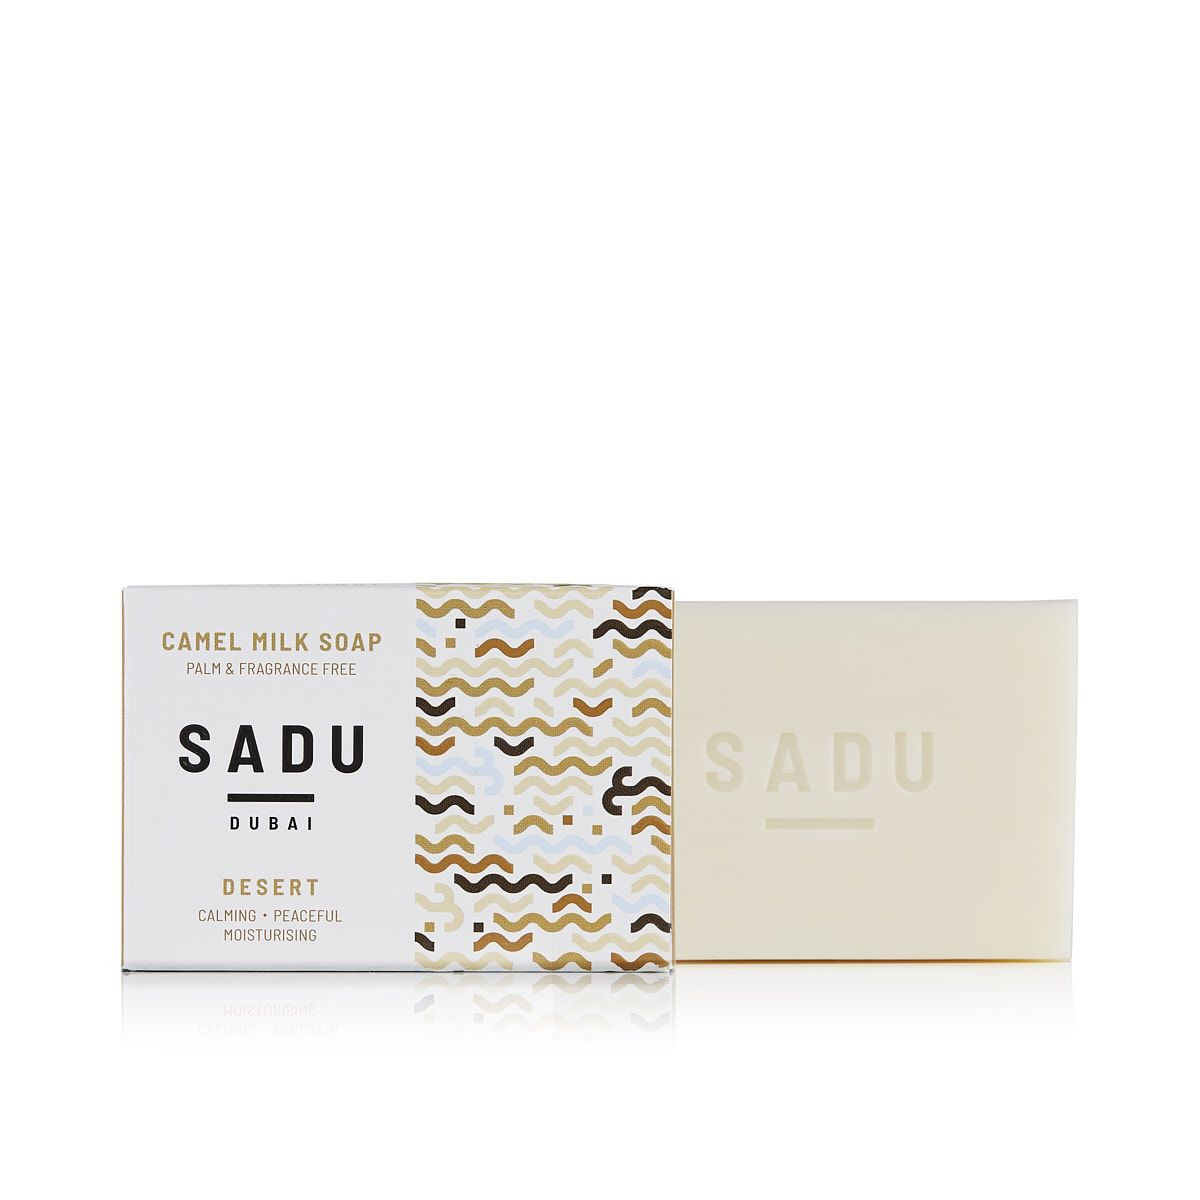 Camel milk soap Unscented - SADU collection